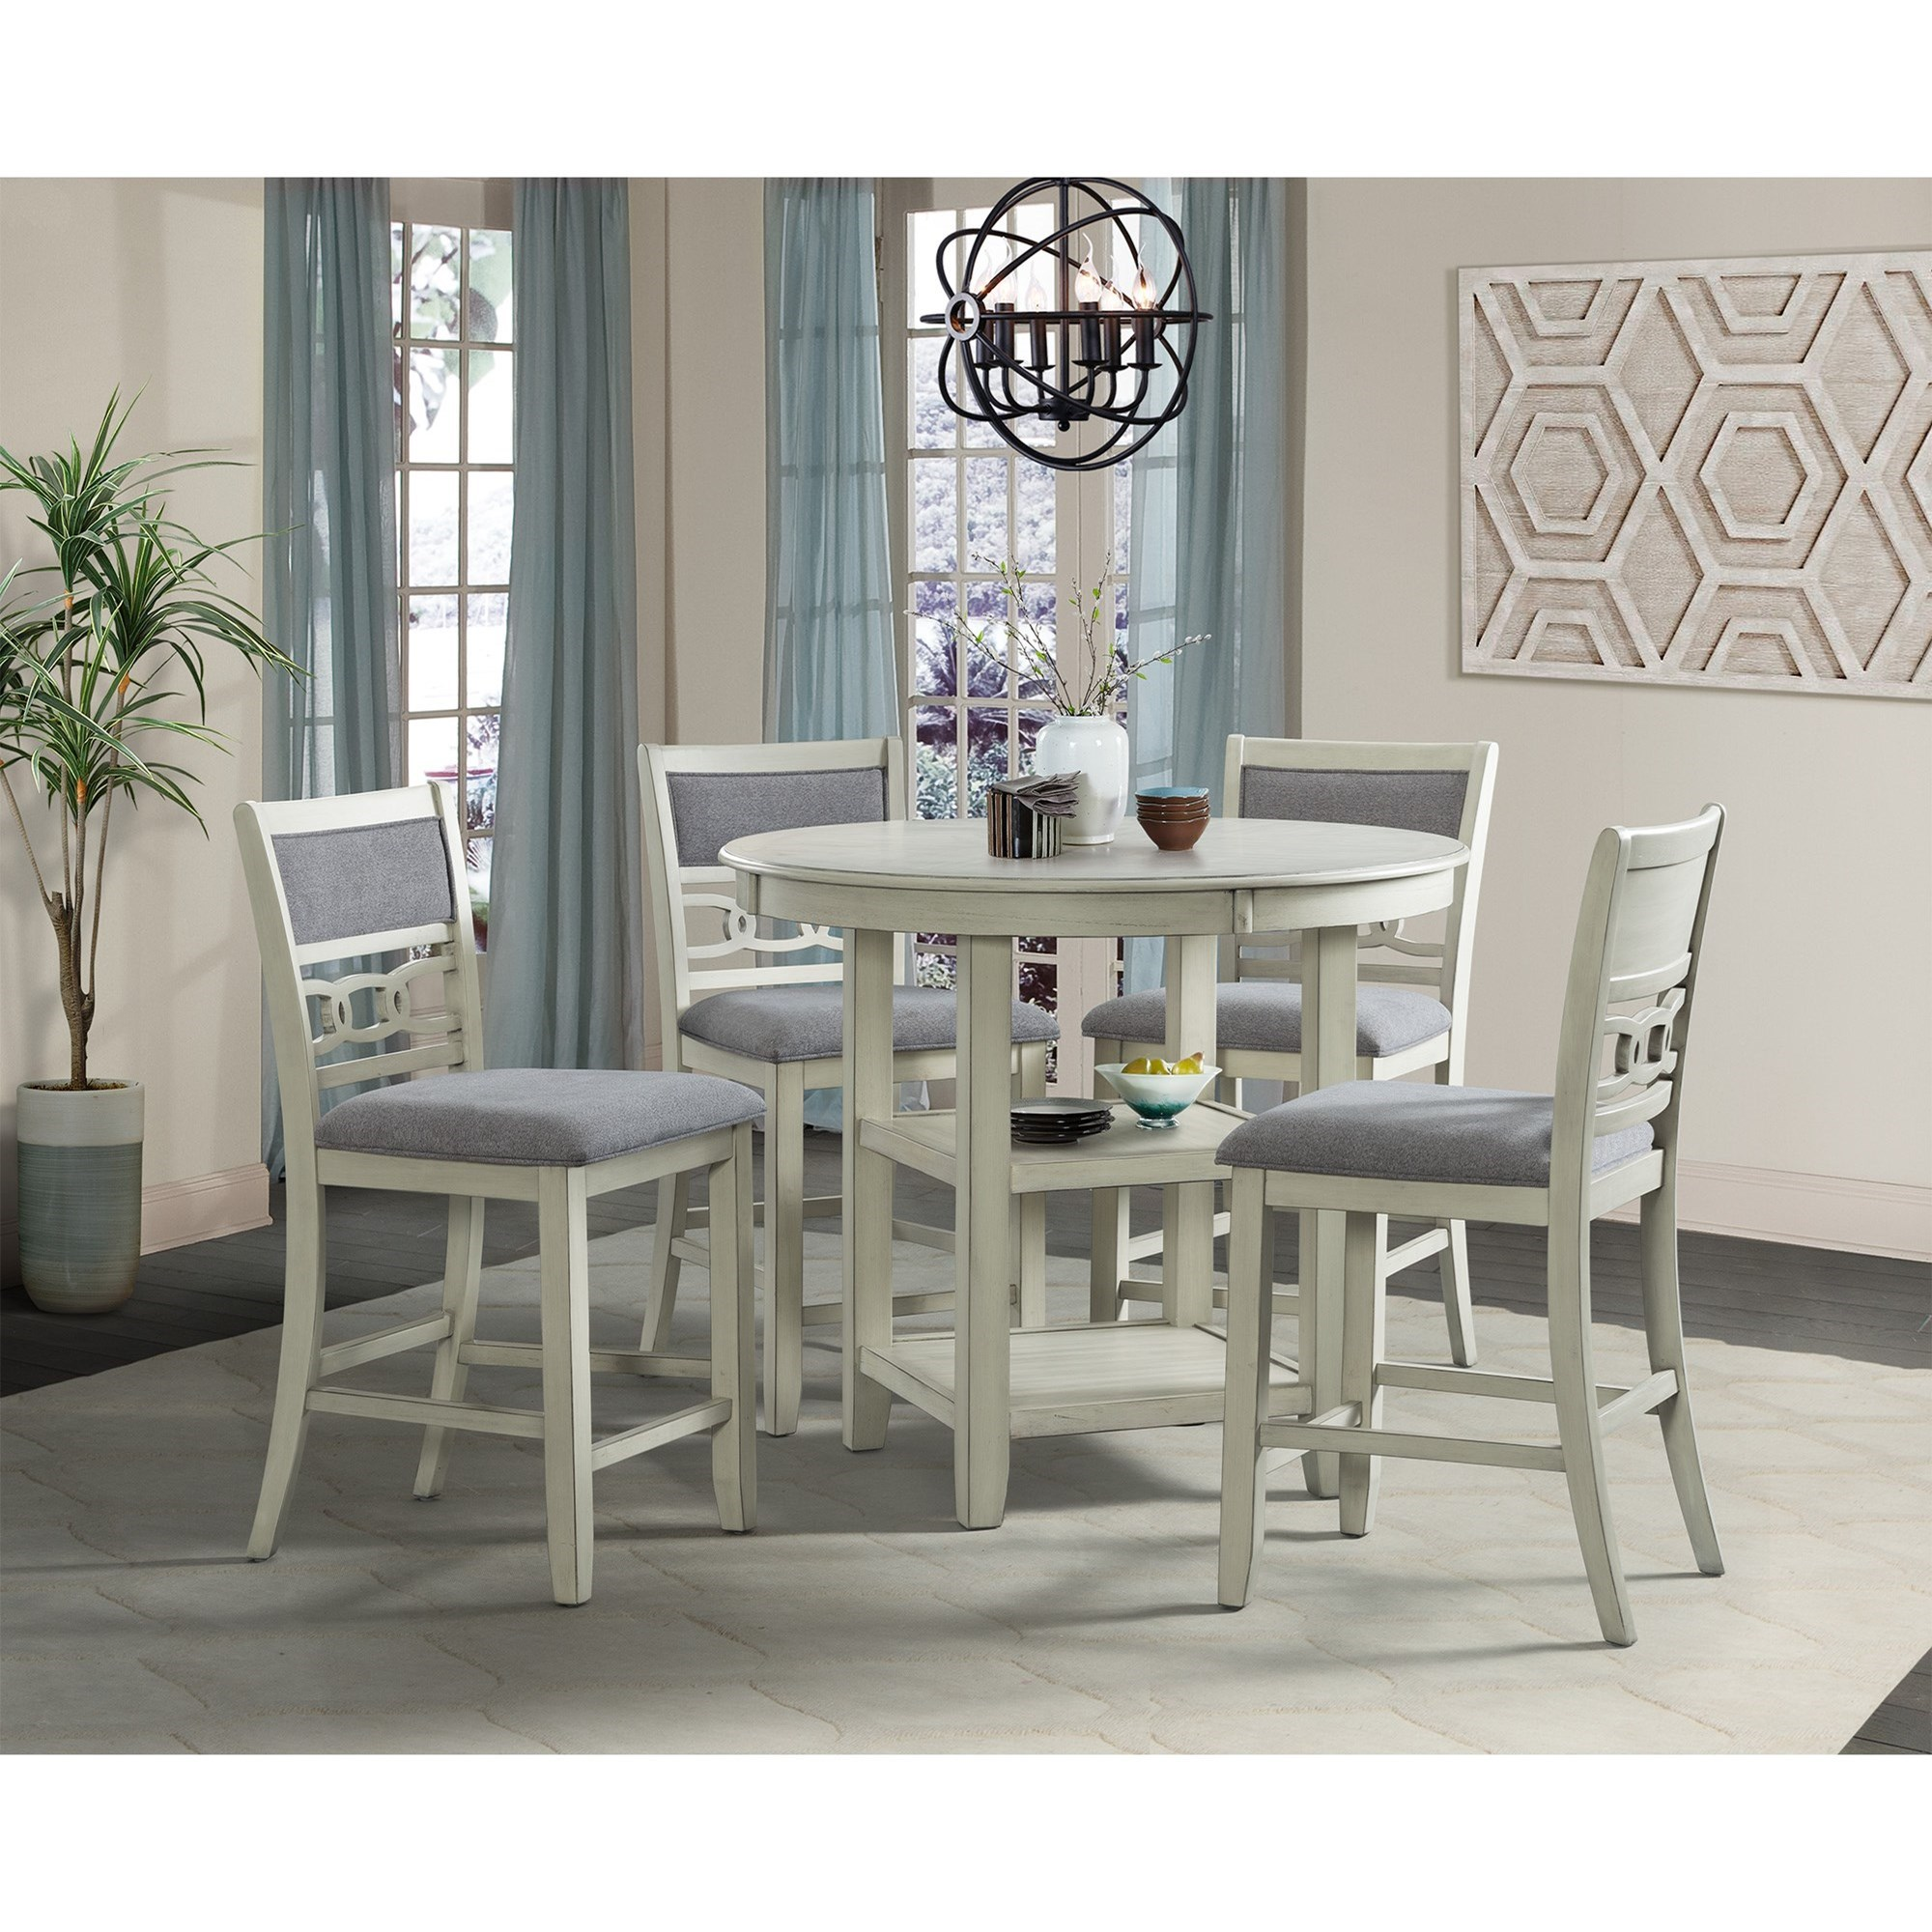 Amherst 5-Piece Pub Table Set by Elements International at Smart Buy Furniture